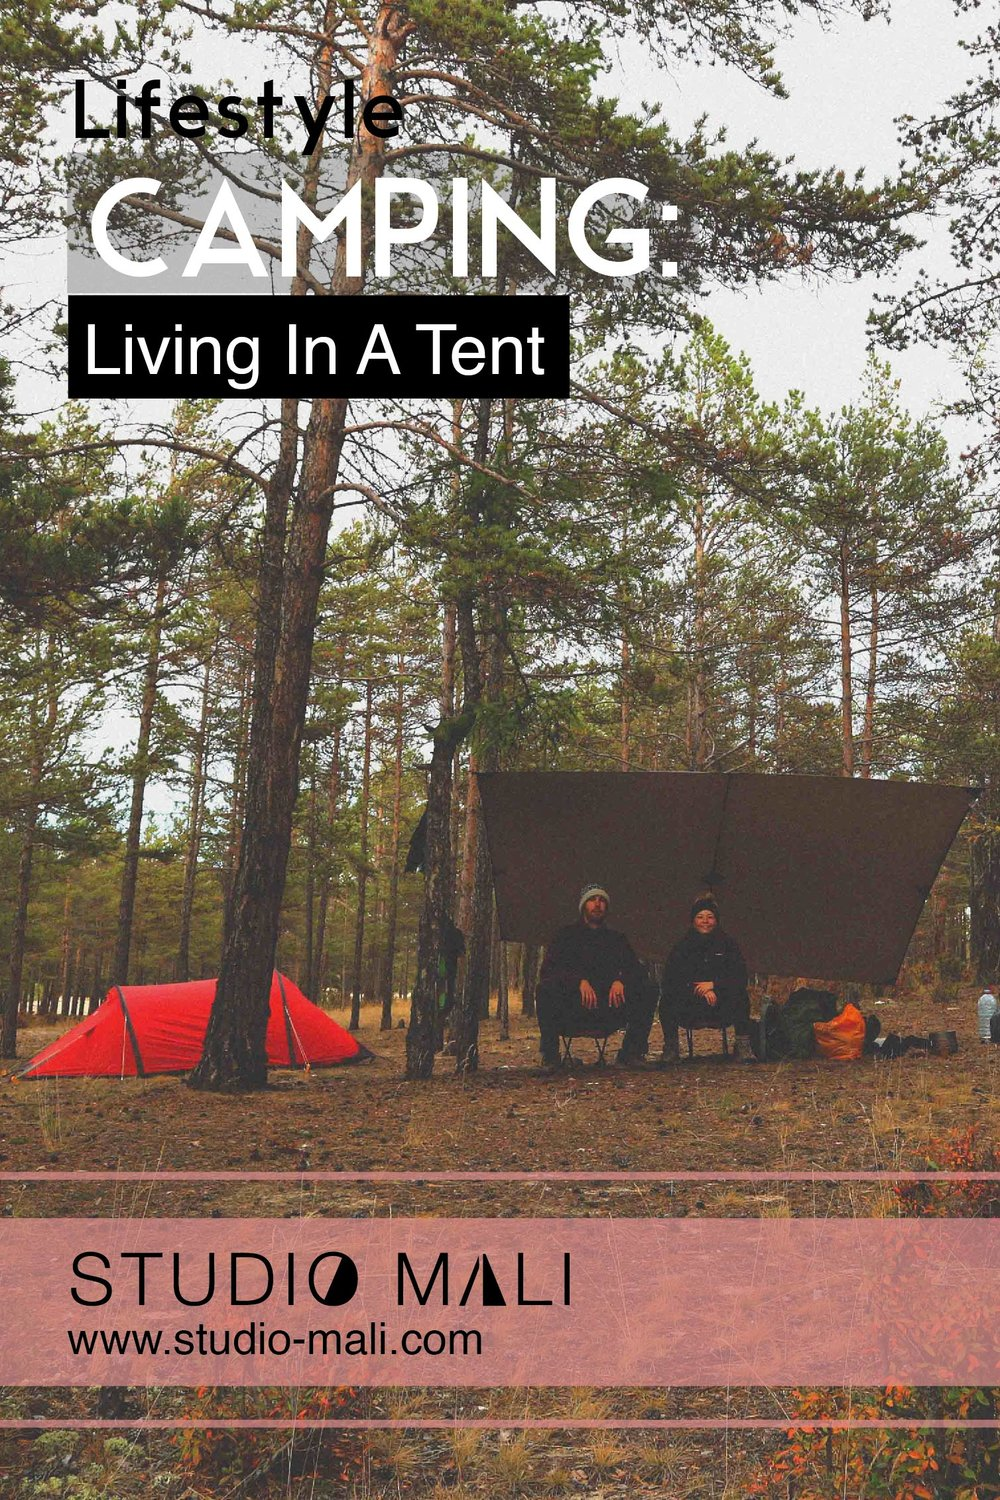 Camping - Living In A Tent, By Studio Mali